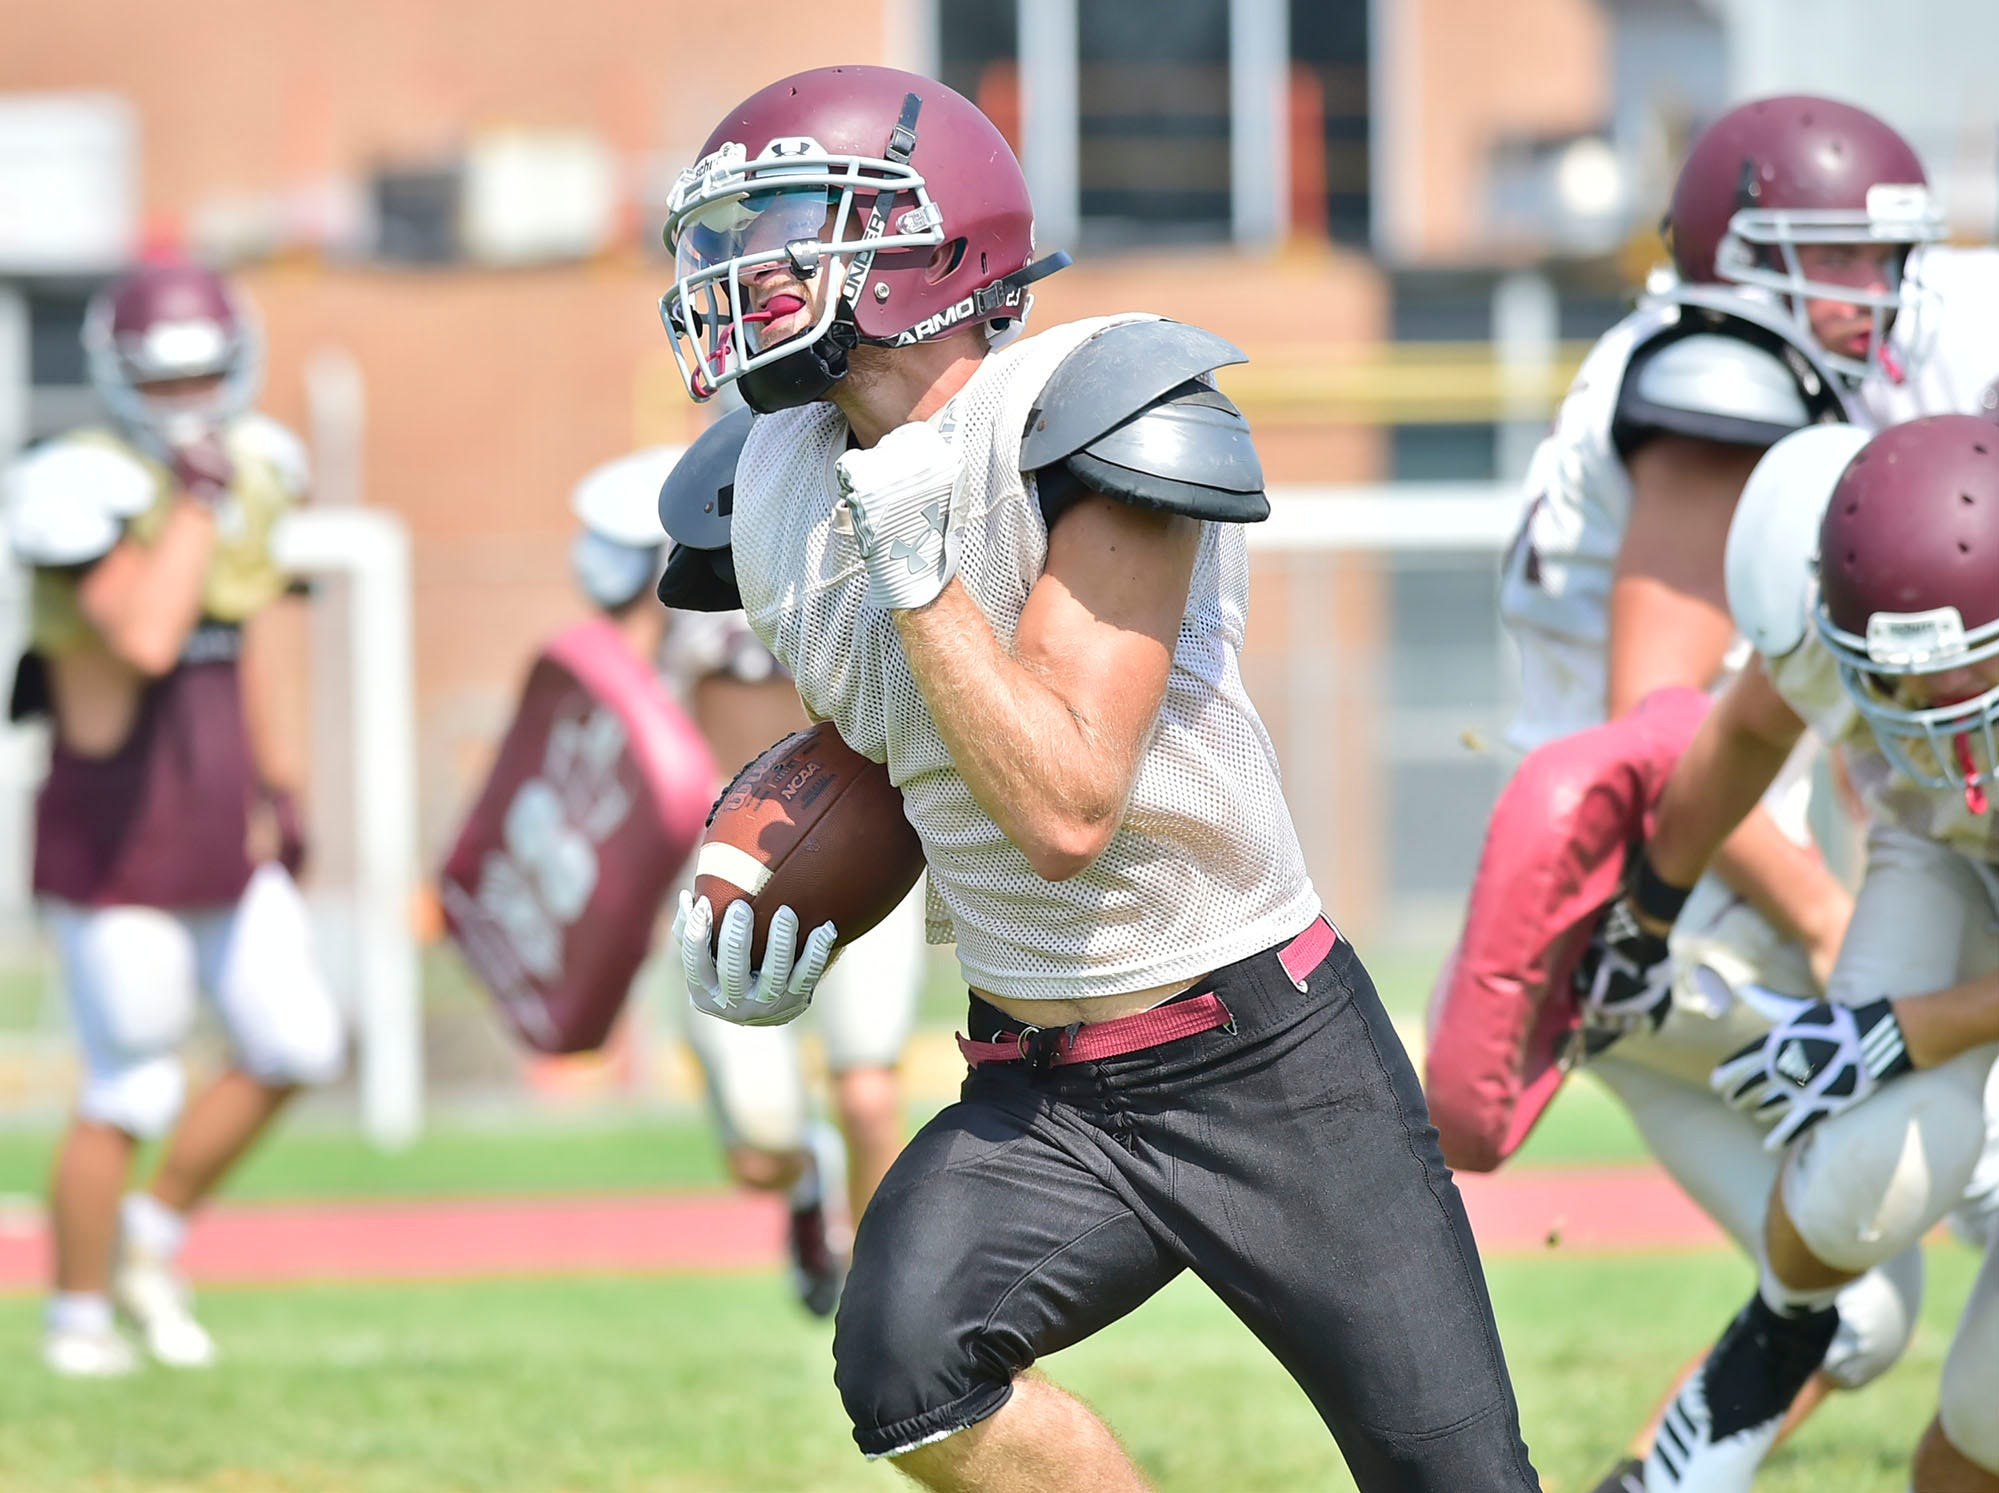 Kyler Brown runs the ball for the Greyhounds. Shippensburg High School football players practice on Thursday, August 9, 2018.